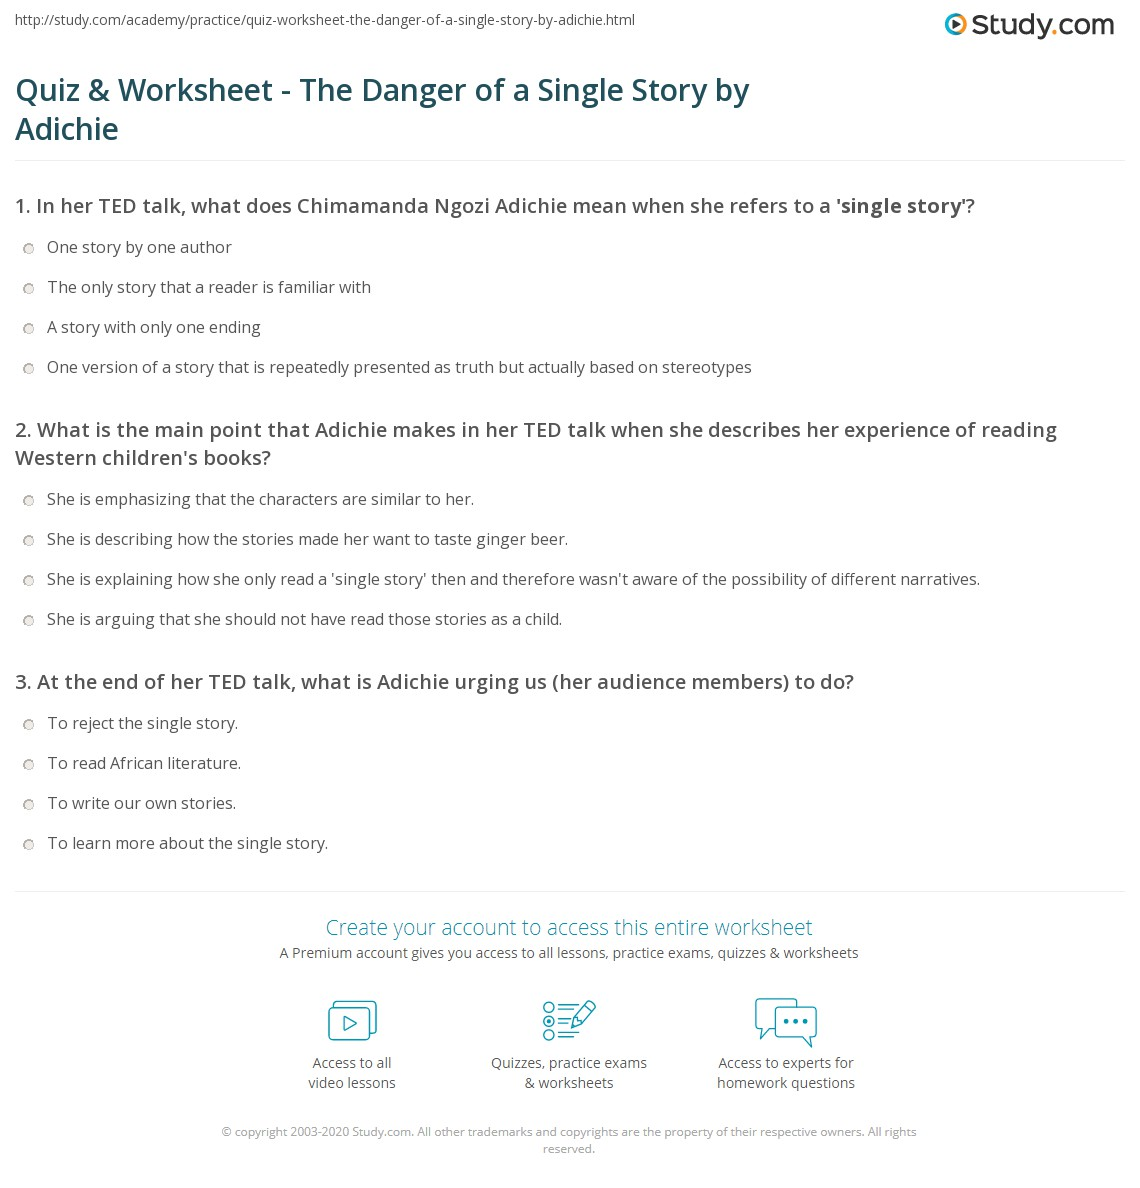 Quiz & Worksheet - The Danger of a Single Story by Adichie | Study.com